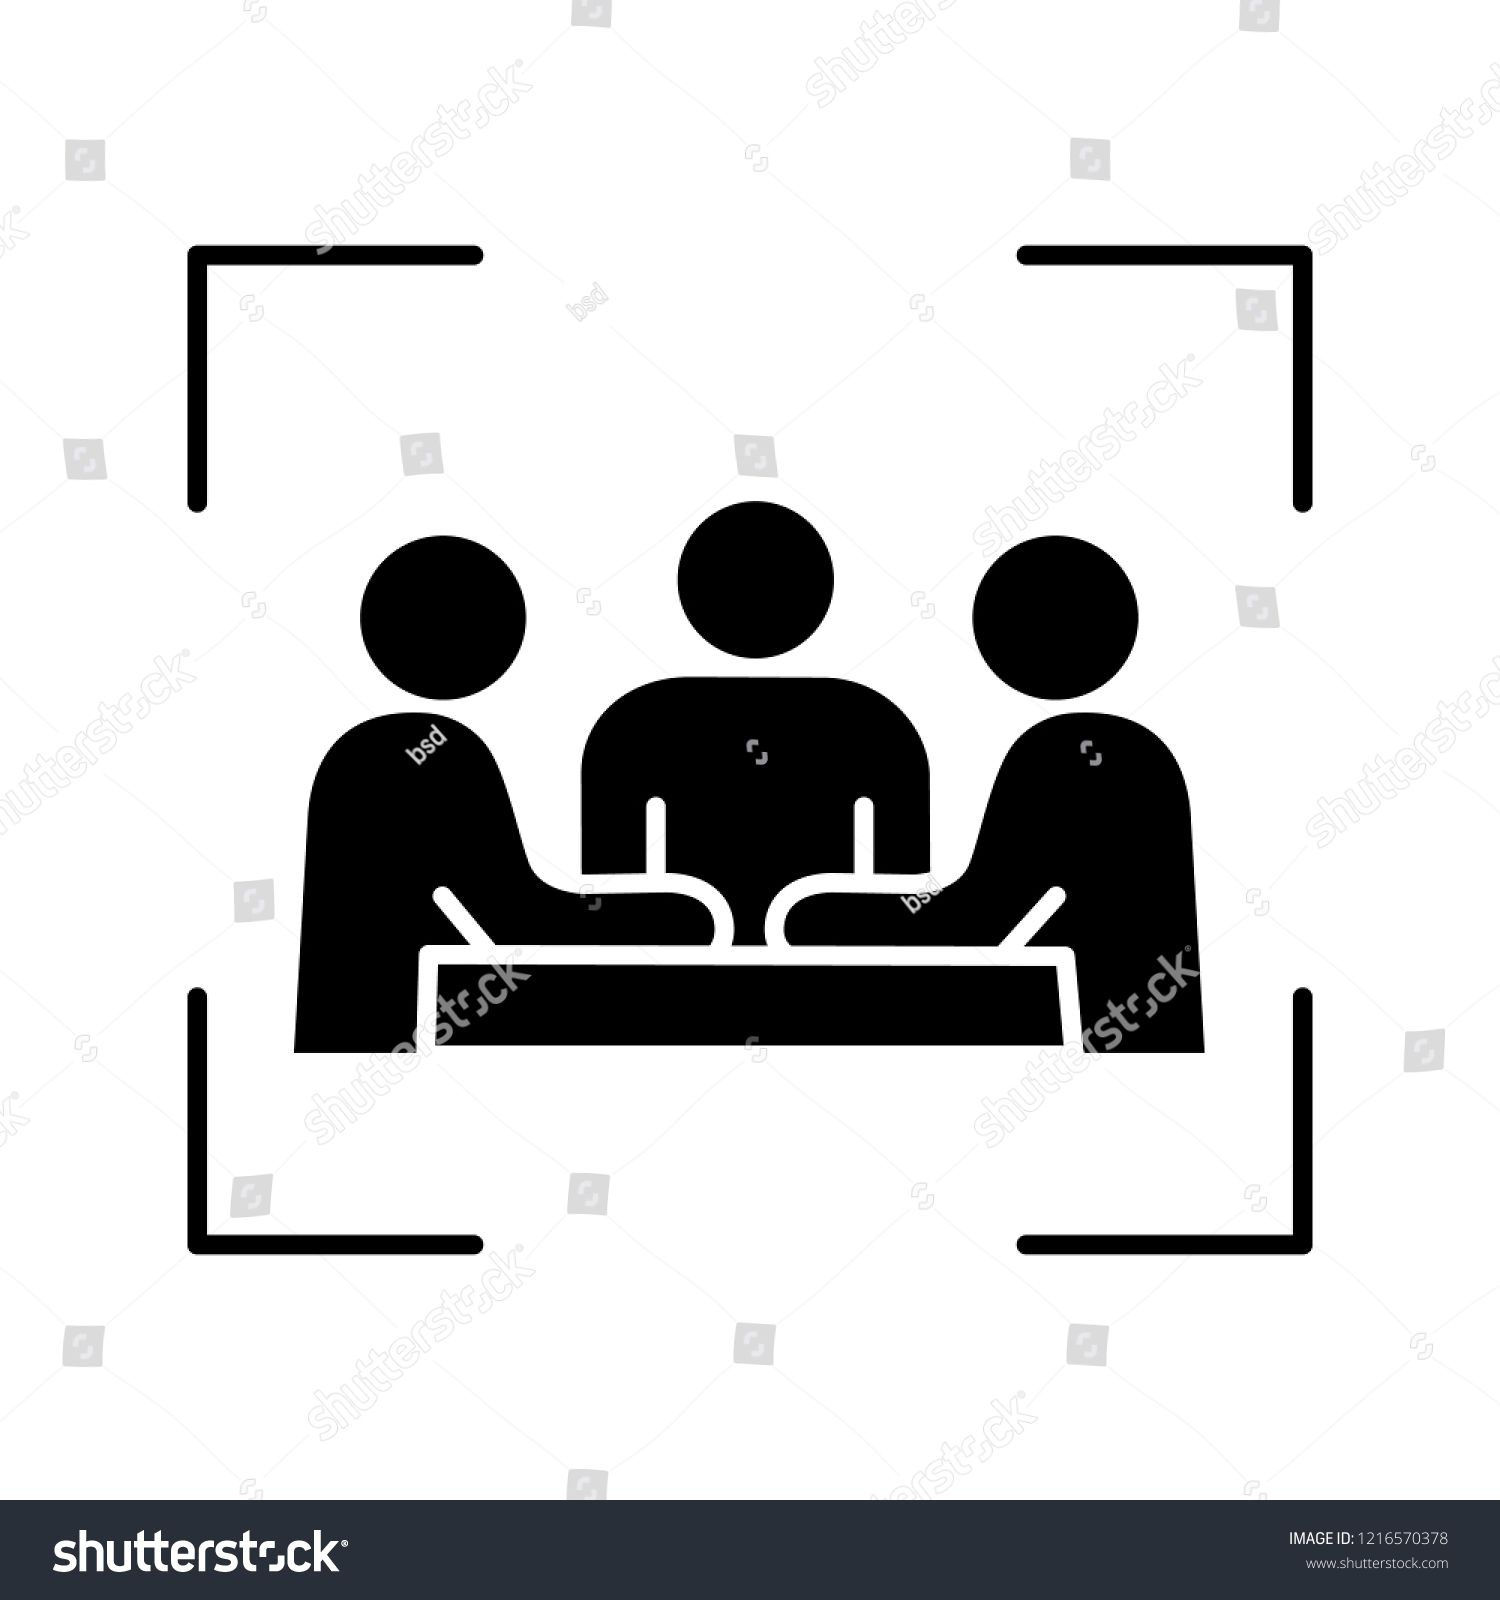 Partners Investors Businessmen Glyph Icon Company Meeting Conference Friends Colleagues Coworkers Board Of Directo Icon Company Glyph Icon Business Man